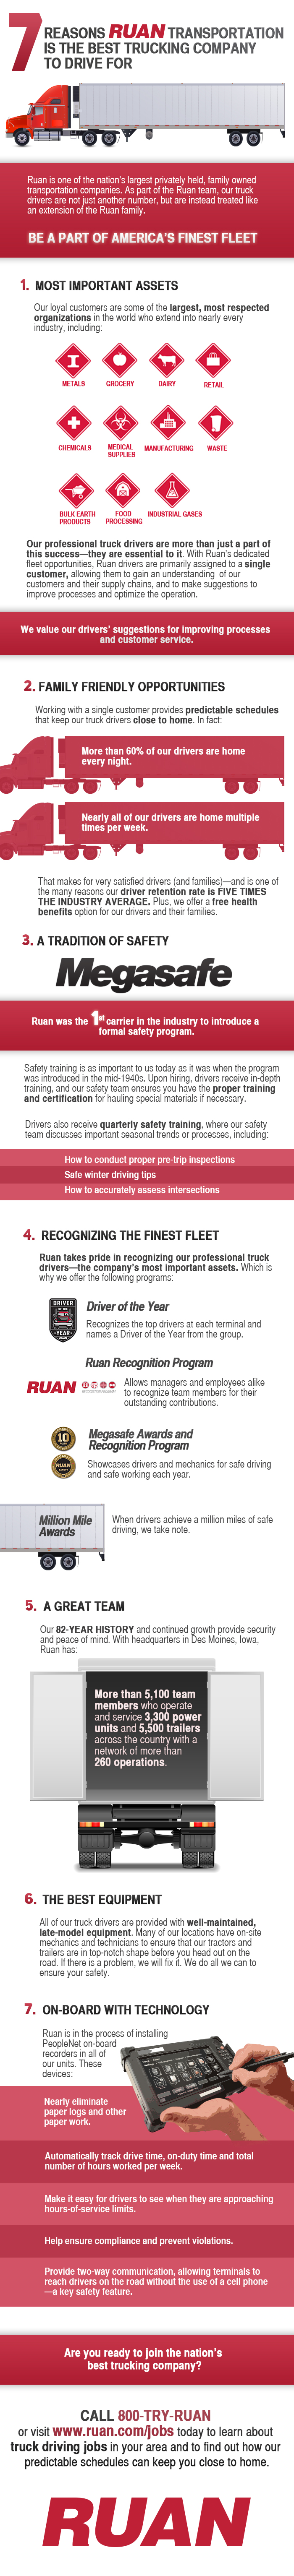 ruan transportation best truck driver jobs infographic